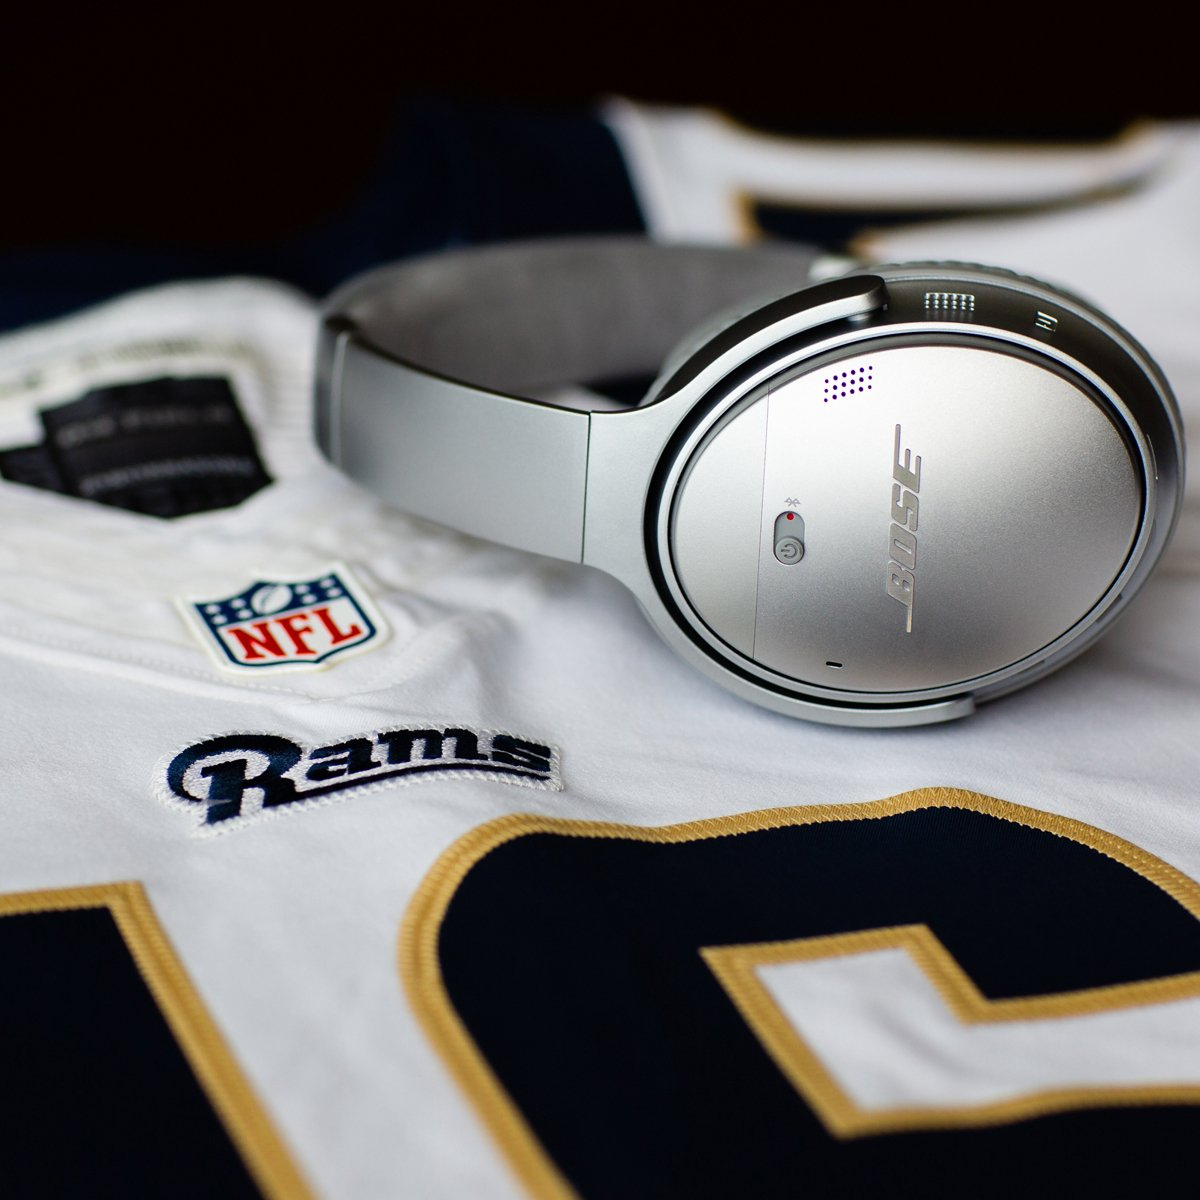 And what a game it was! Congrats @Chiefs and @RamsNFL — rematch this year? @ESPYS #TeamBose #QC35 II https://bose.life/2YitAU0